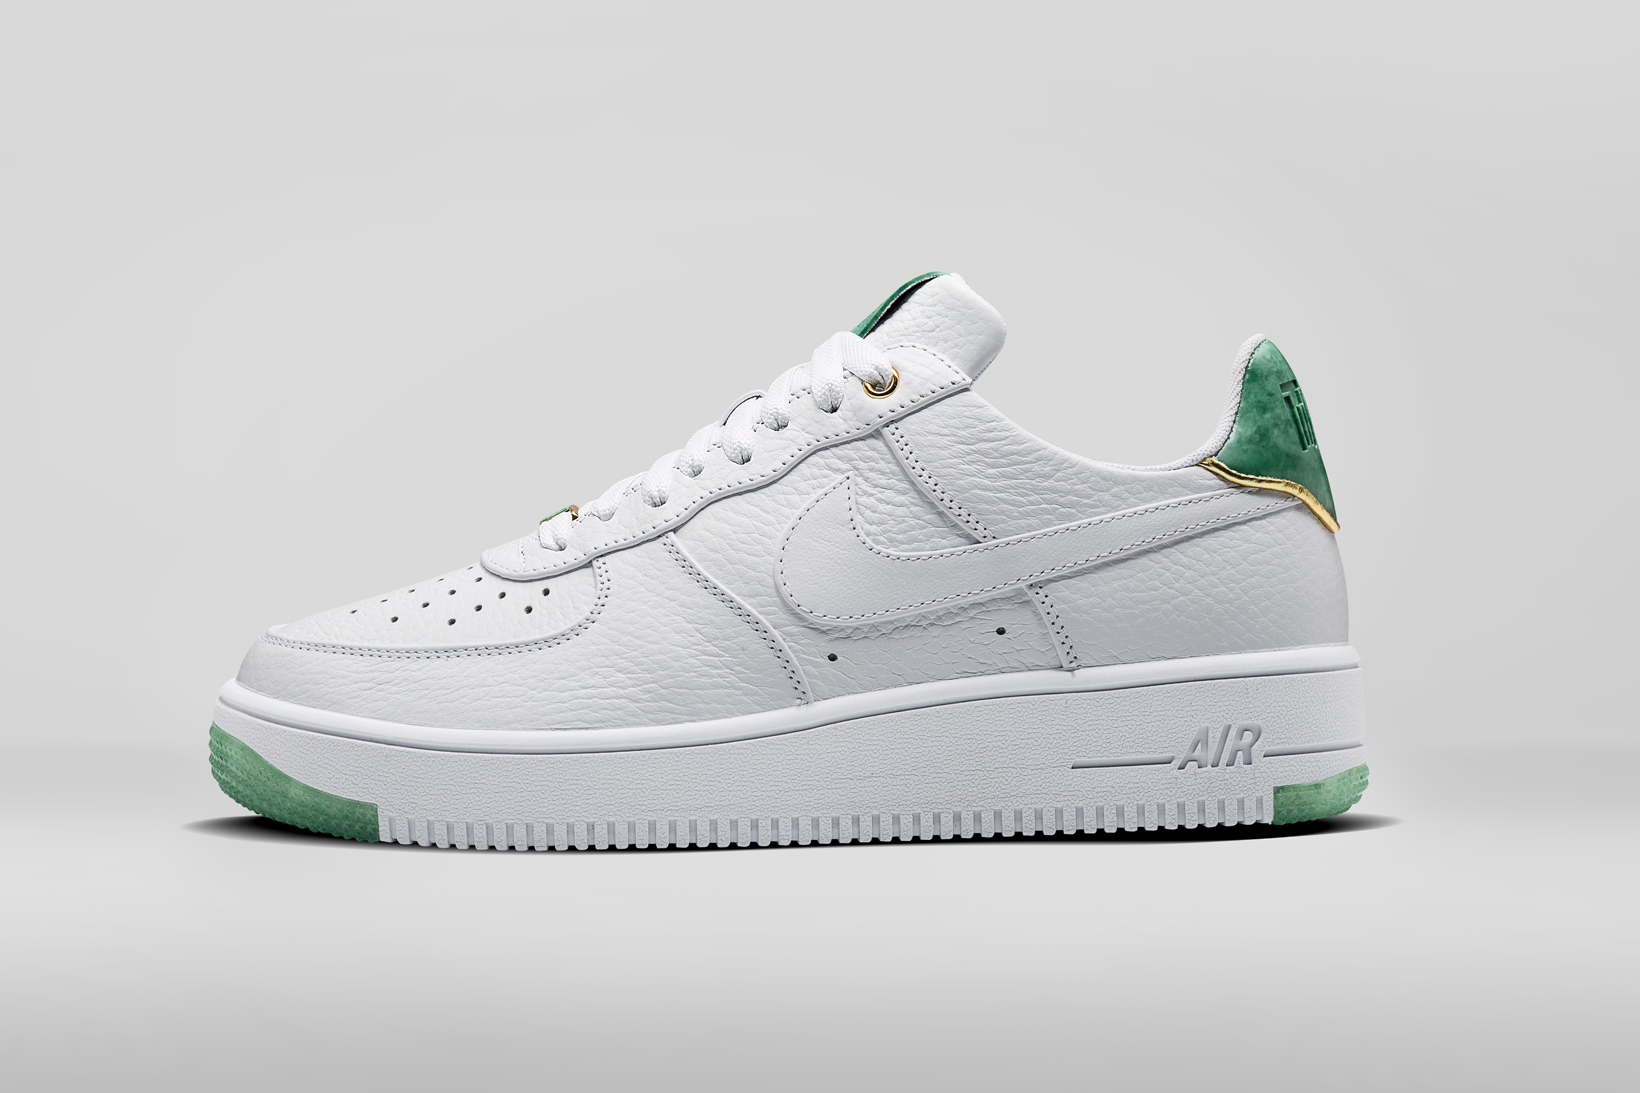 nike air force 1 nai ke jade chinese new year hypebeast. Black Bedroom Furniture Sets. Home Design Ideas